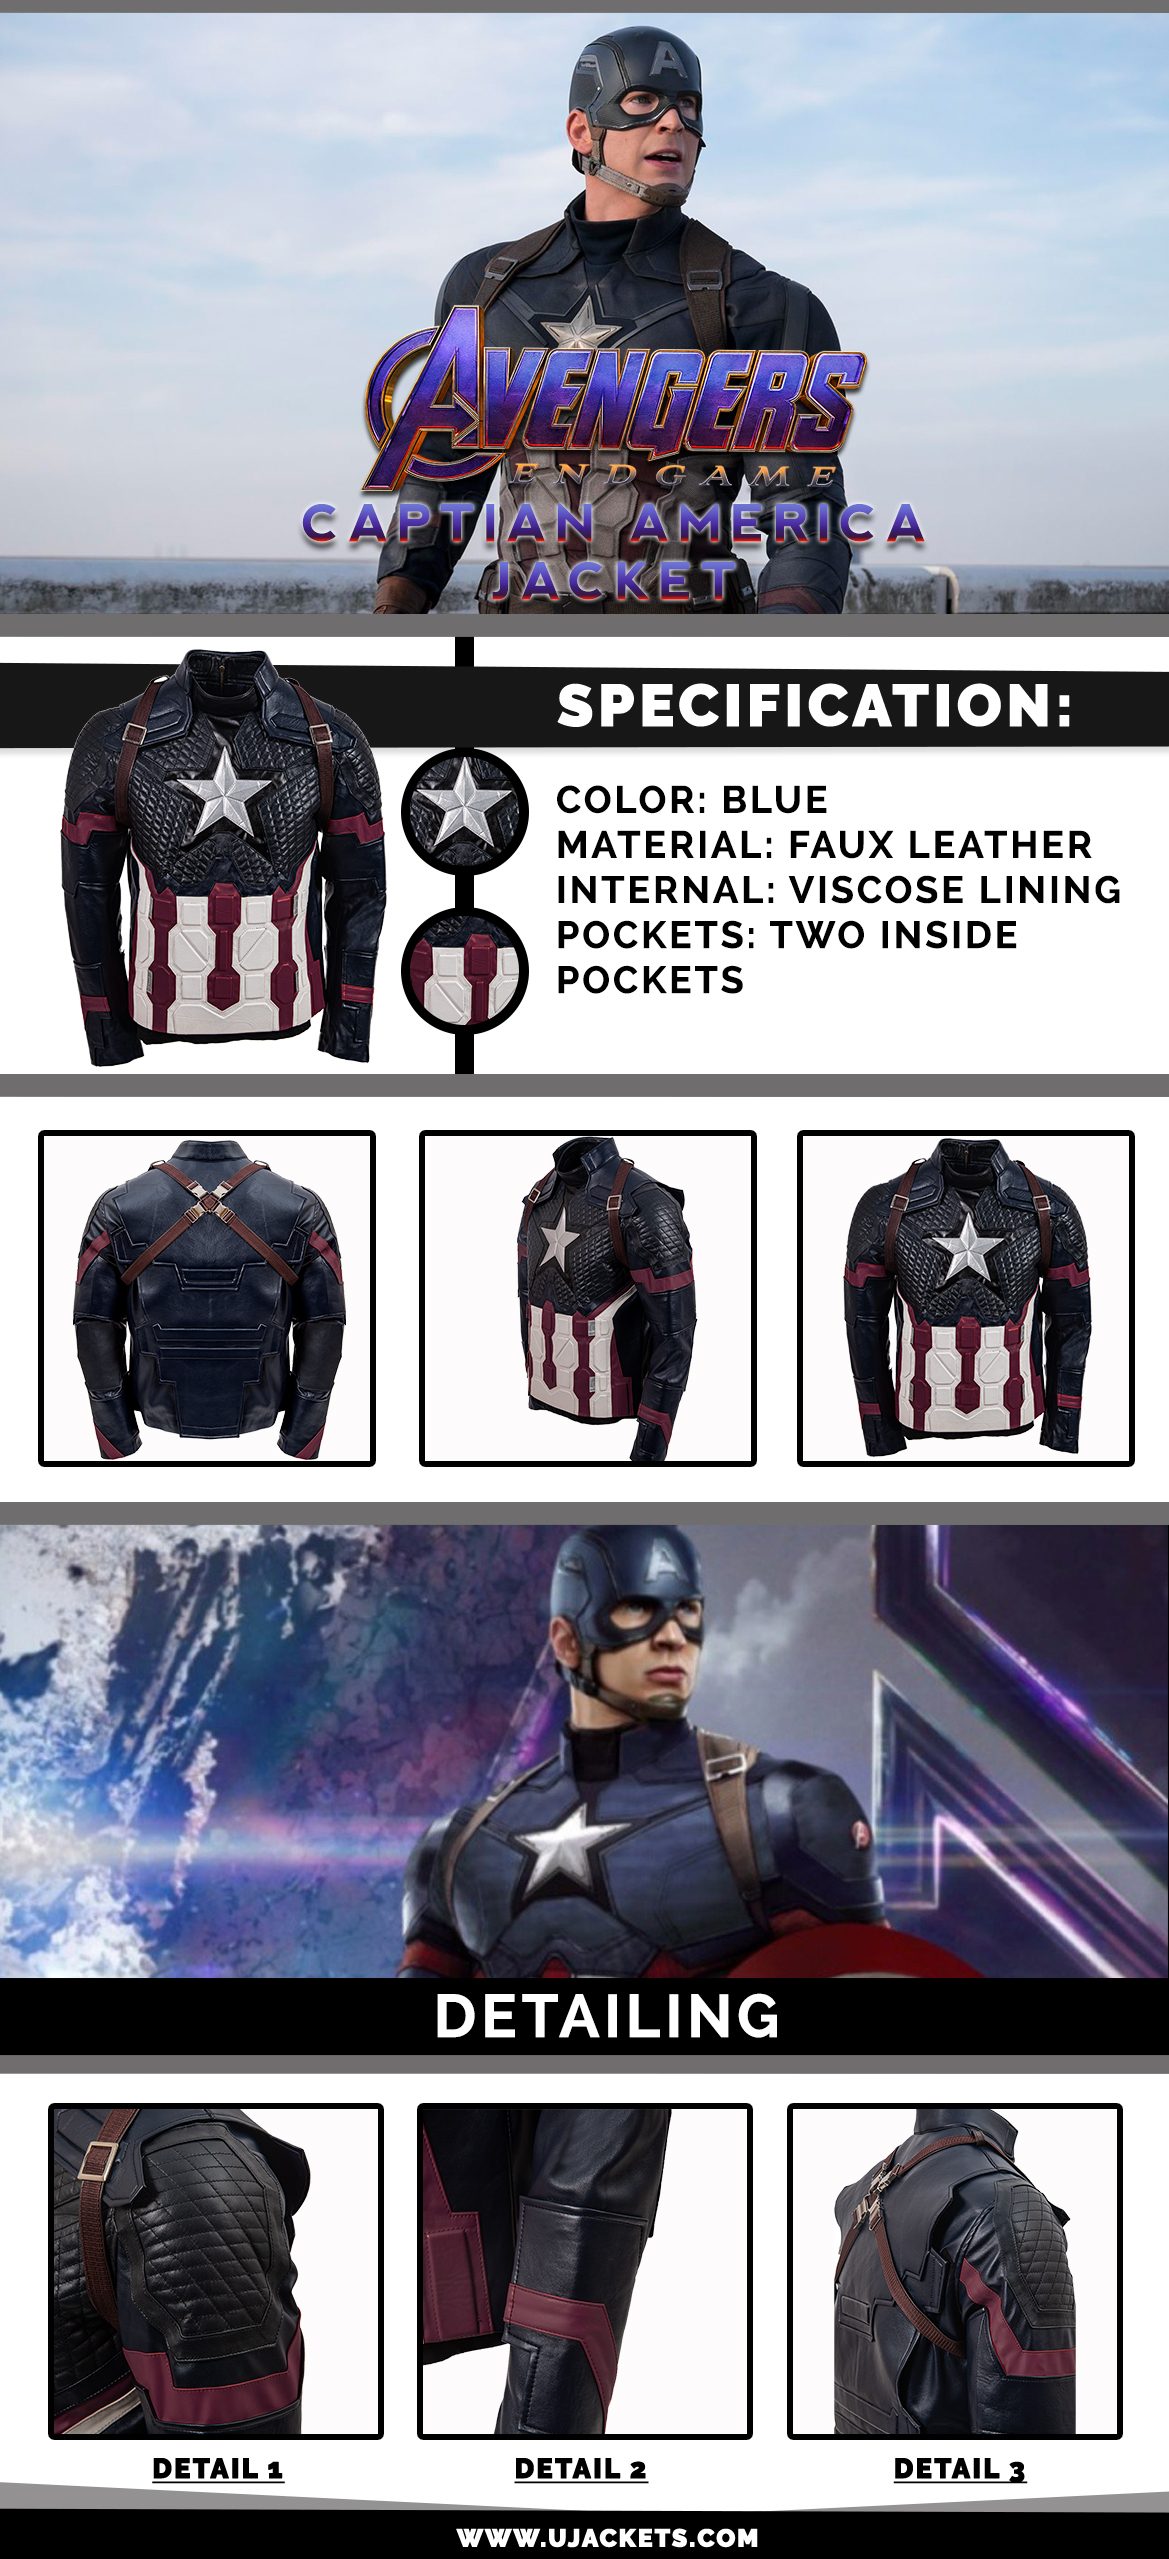 captian_america_jacket_infographic